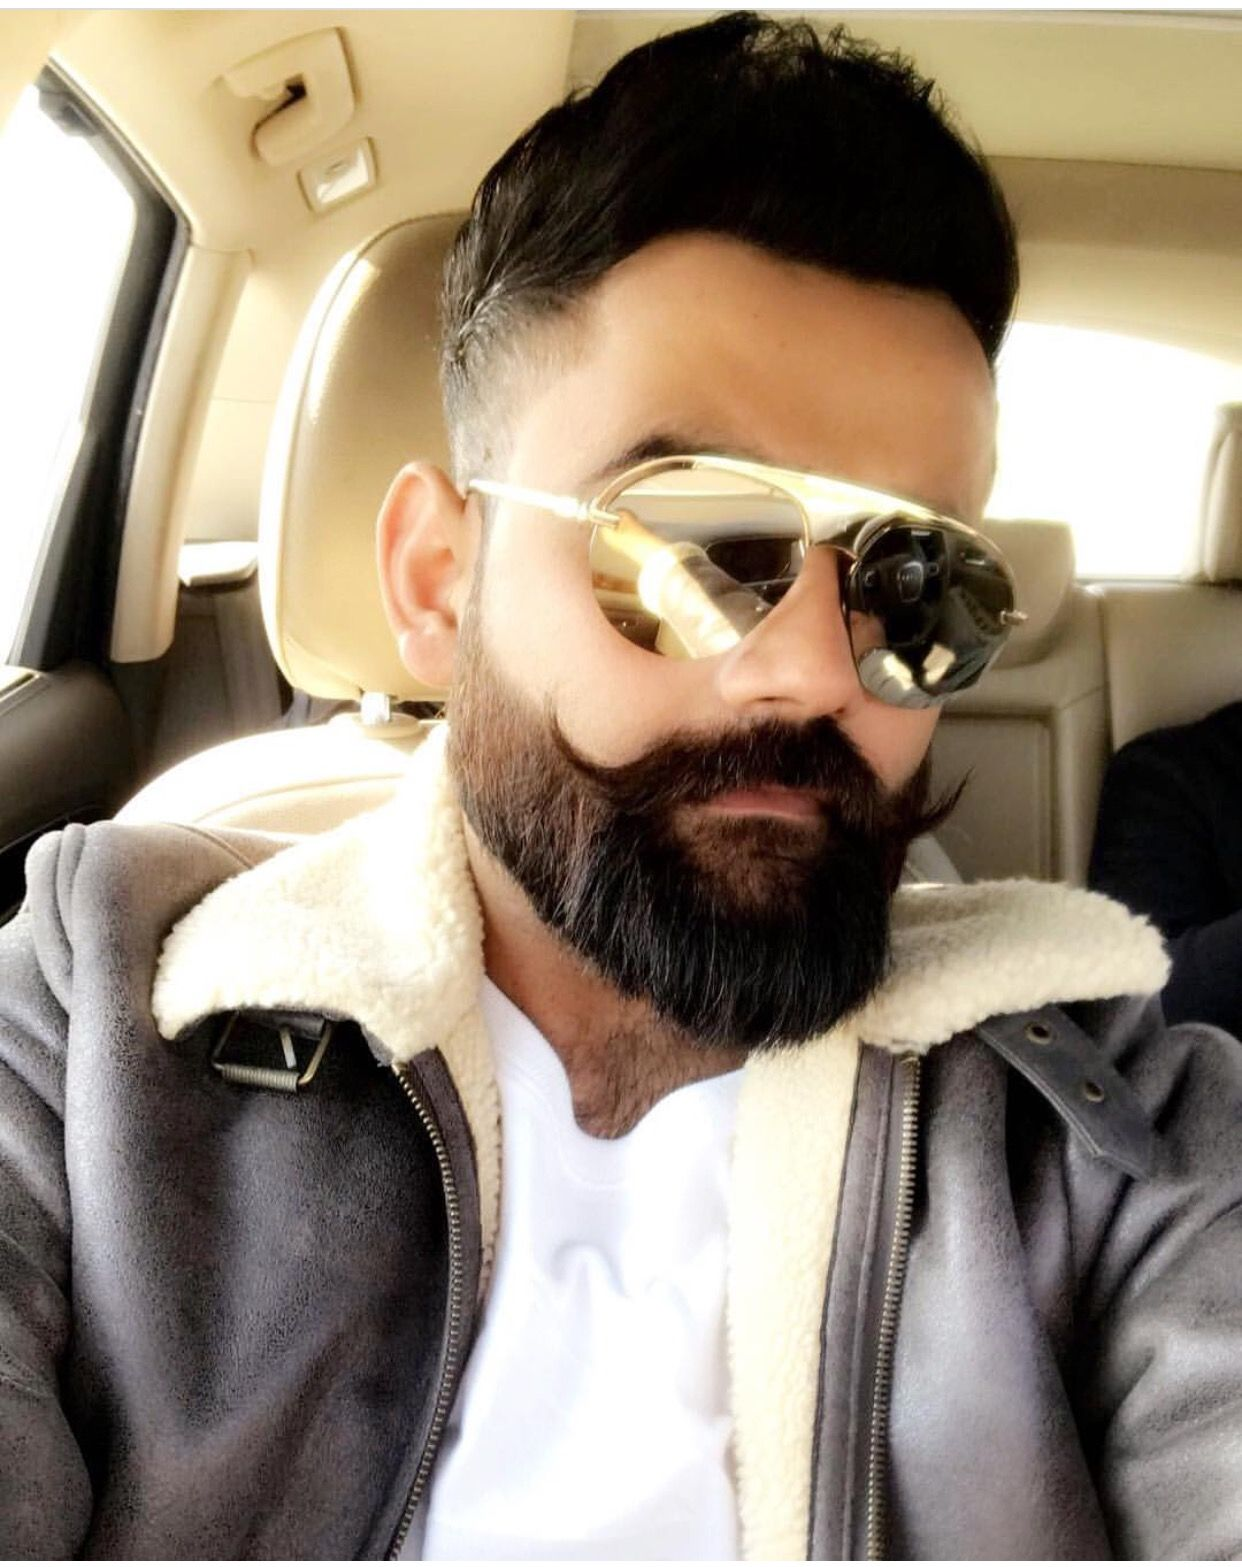 Geet Gill Amrit Maan In 2018 Pinterest Beard Haircut Sexy And